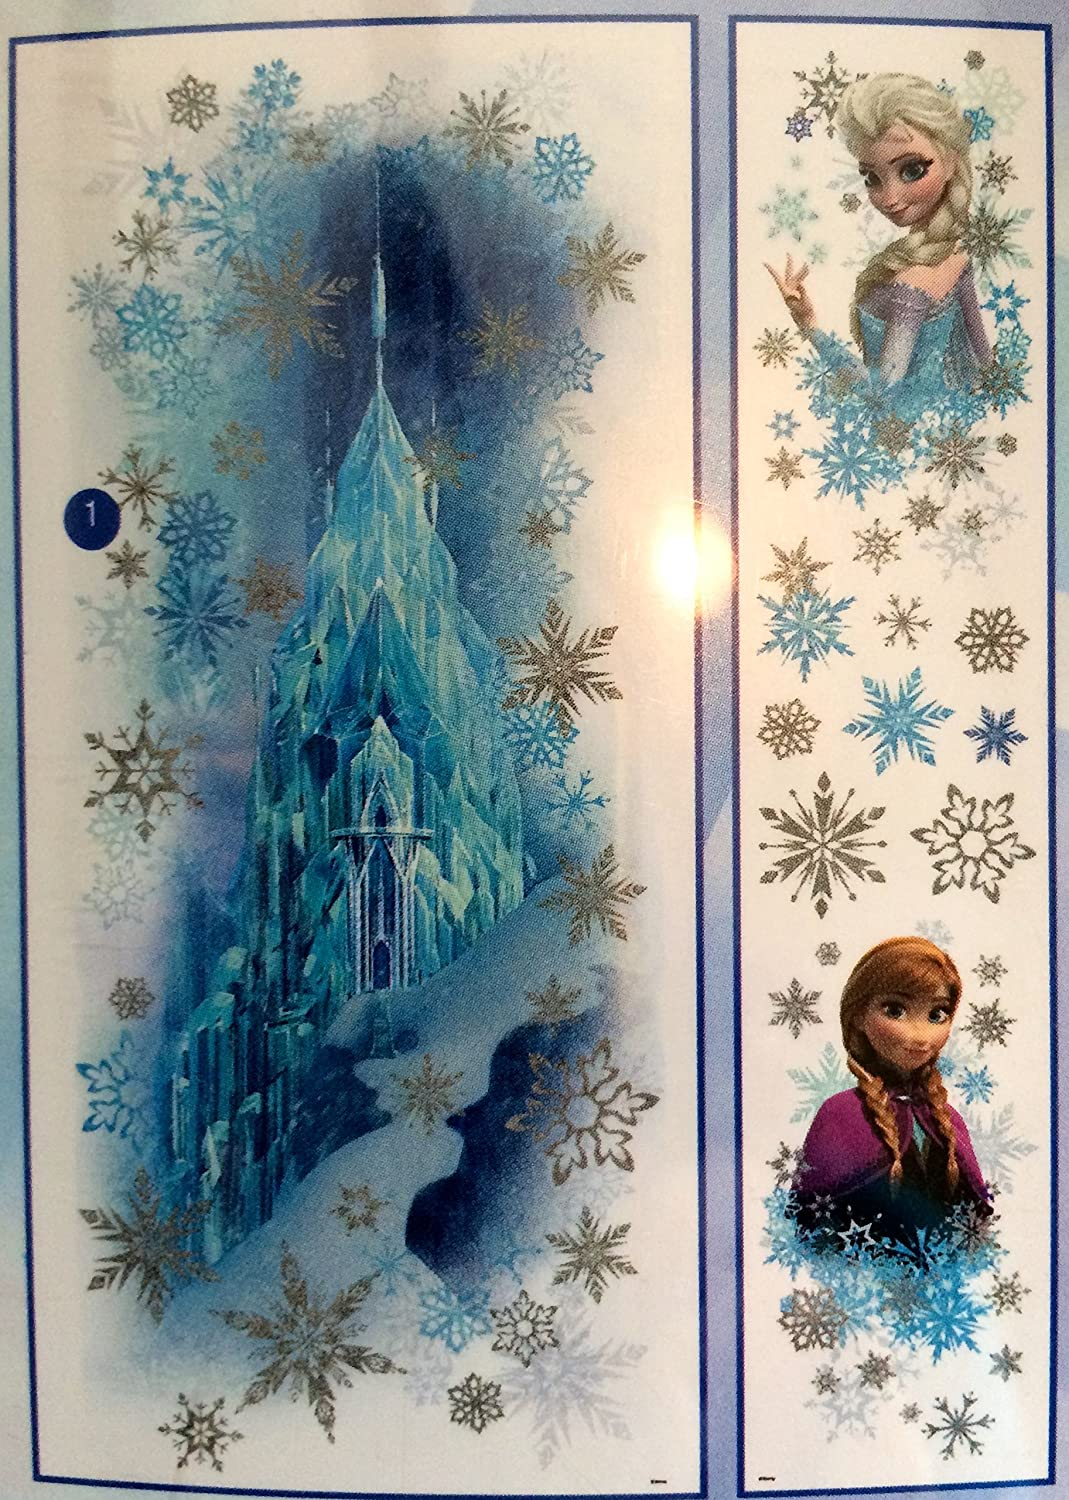 Amazon disney frozen wall decor mega pack 1 giant glittering amazon disney frozen wall decor mega pack 1 giant glittering decal of ice castle with headshot decals of anna and elsa 11 pieces and 25 more wall amipublicfo Choice Image